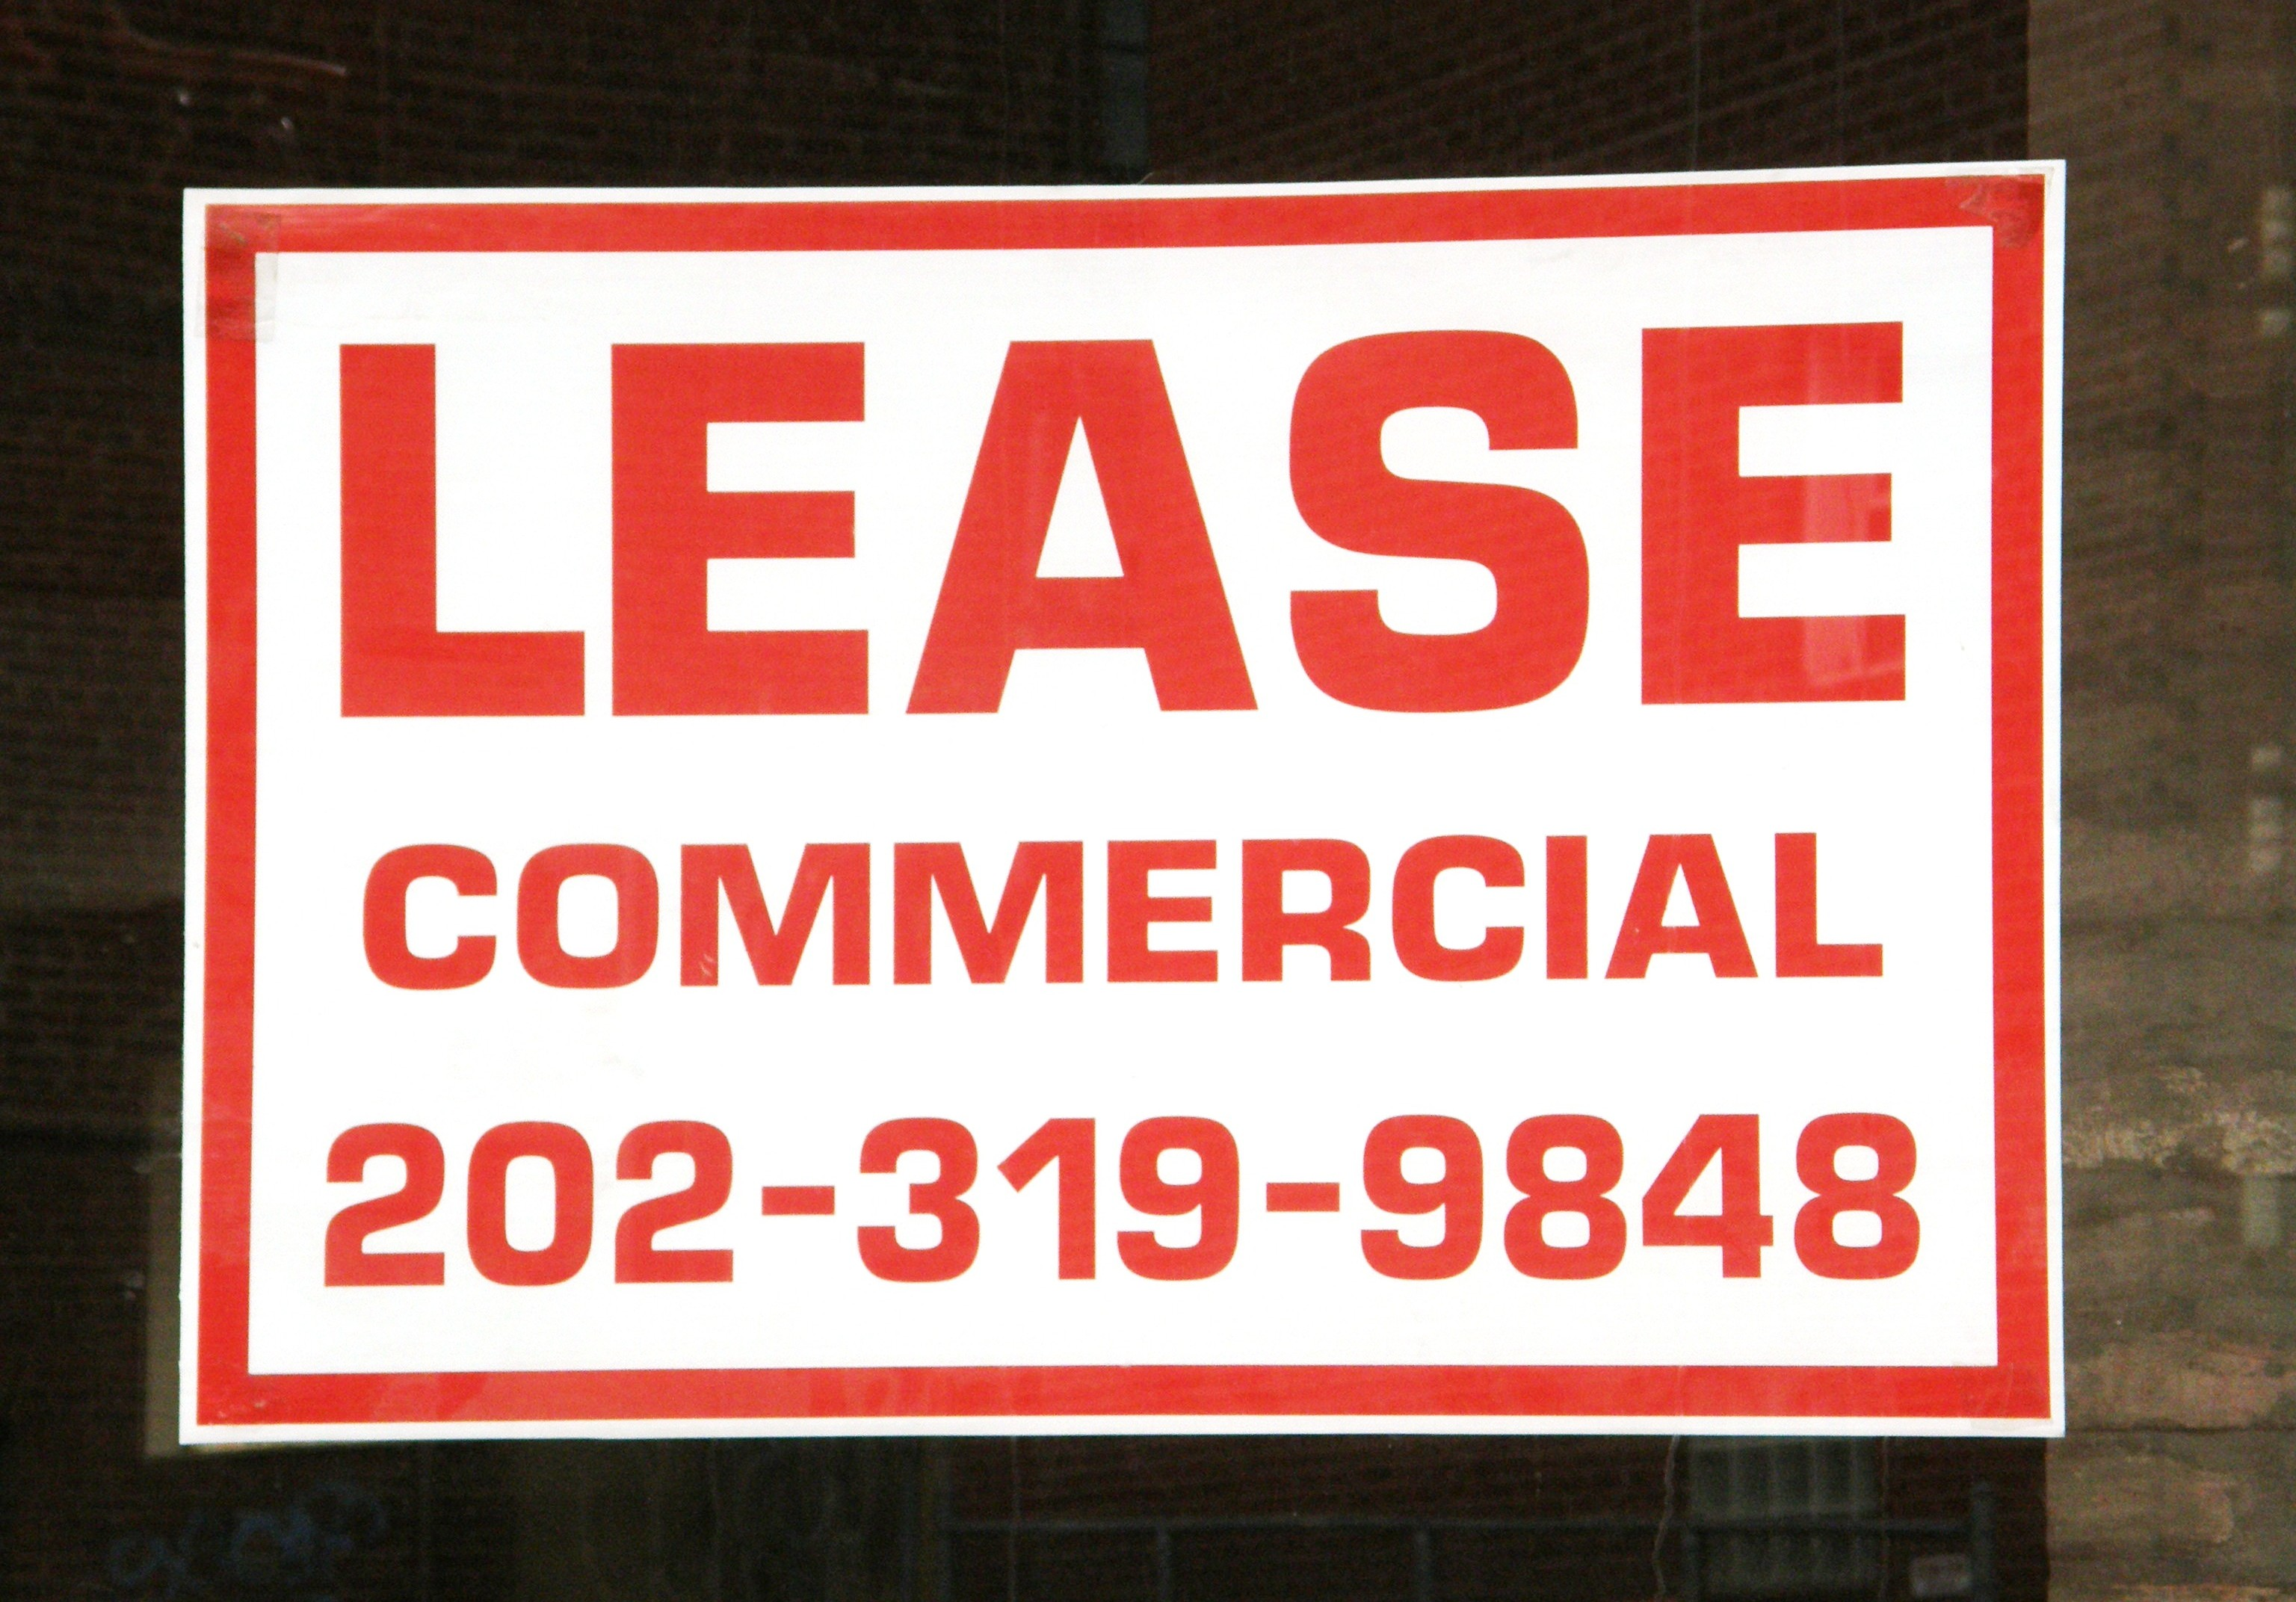 Commercial Lease sign.jpg